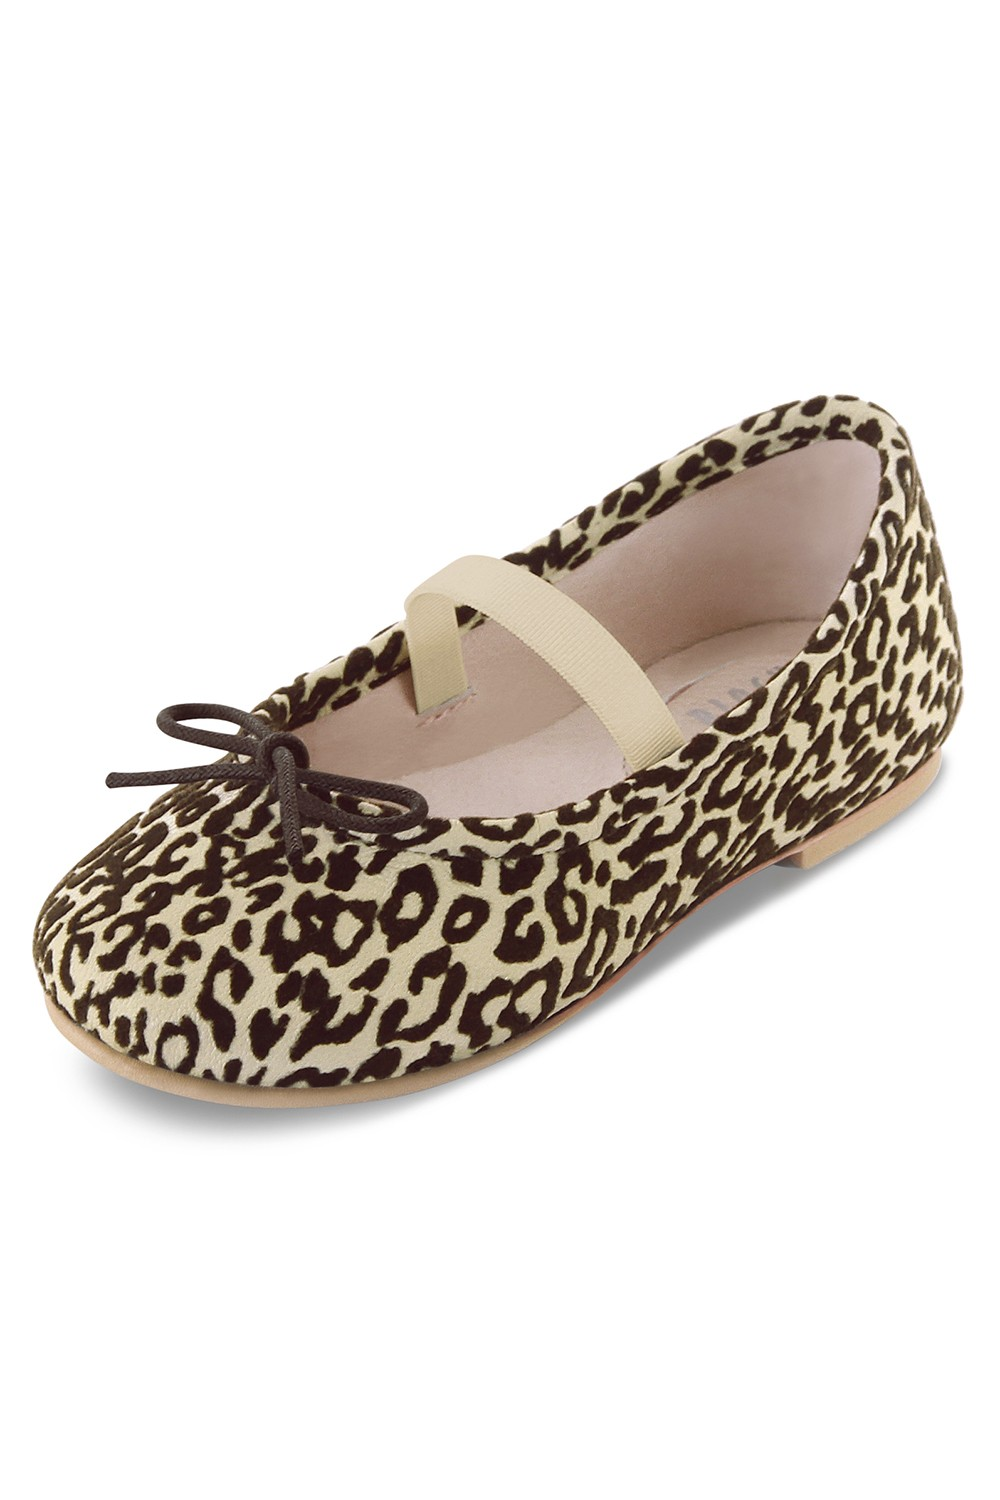 Arabella Leopard Toddlers Fashion Shoes